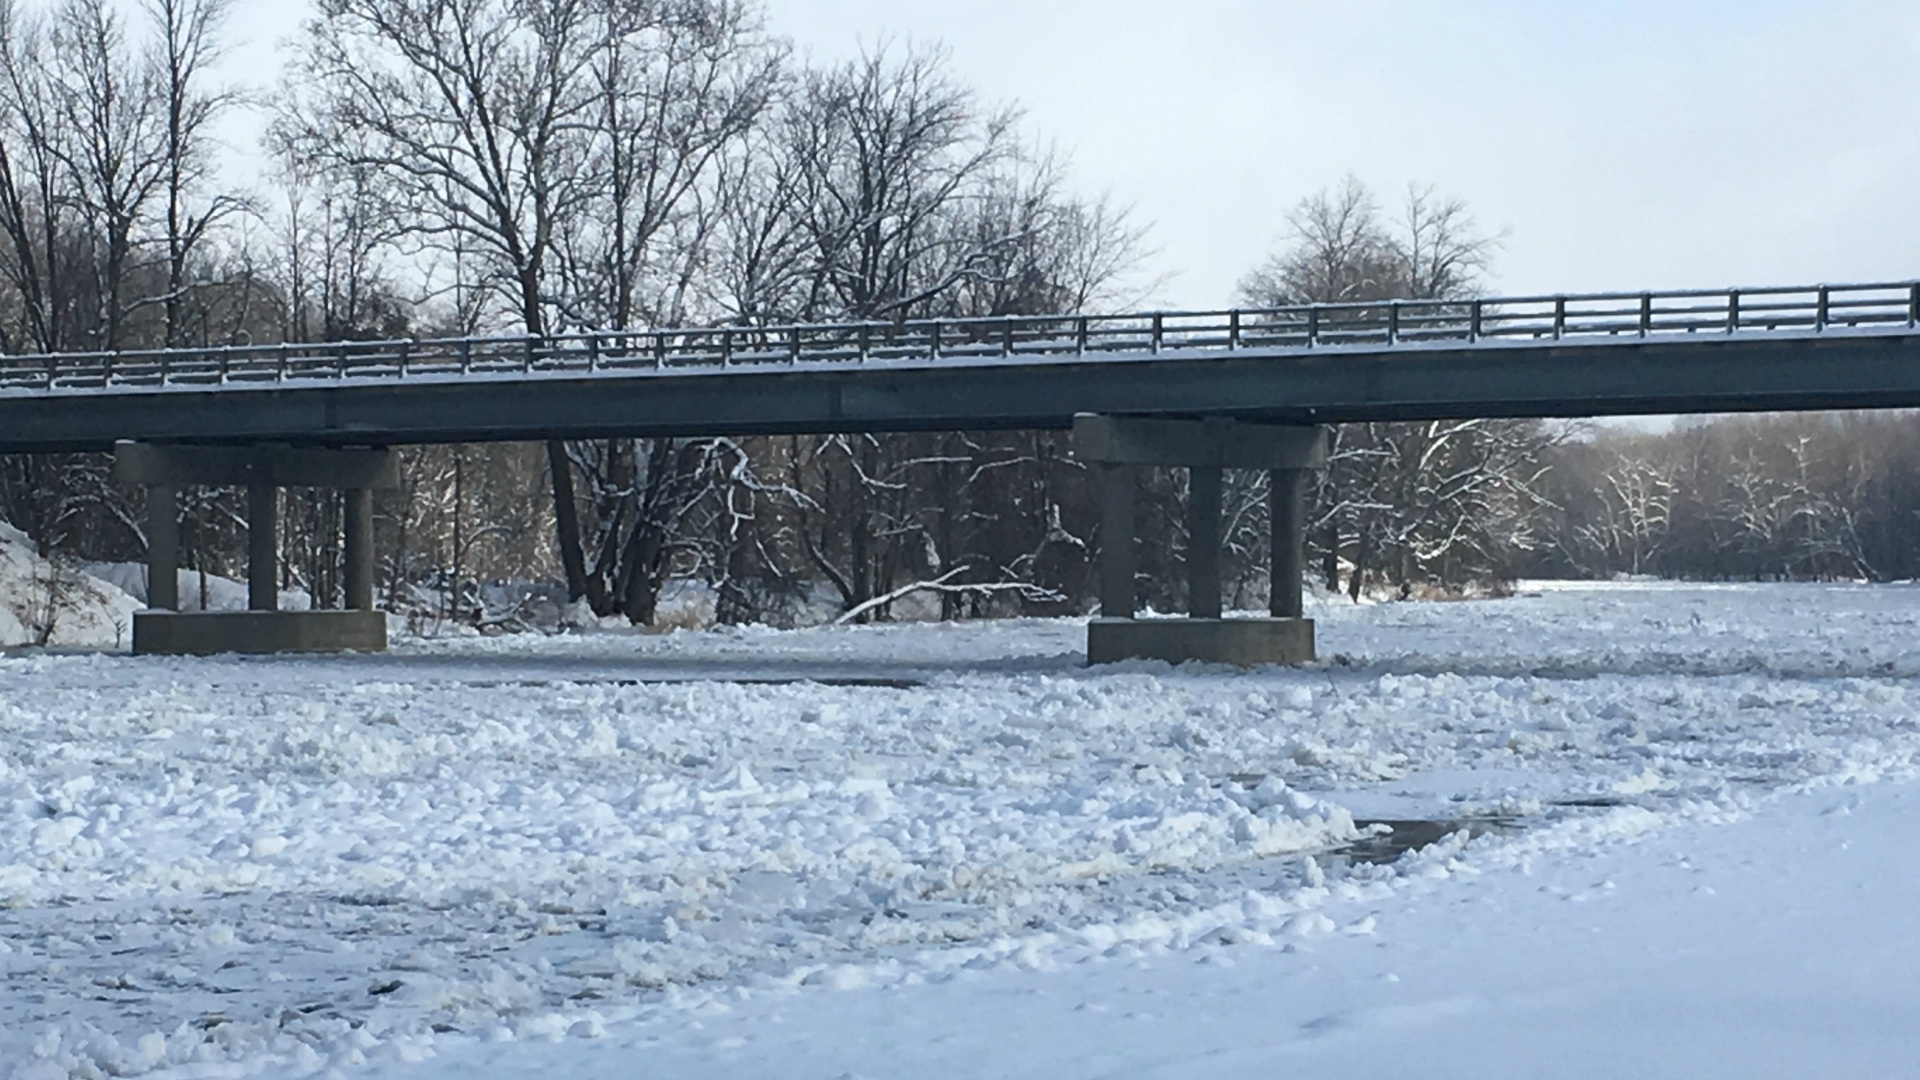 NWS warns of flooding as ice jam clogs Muskegon River